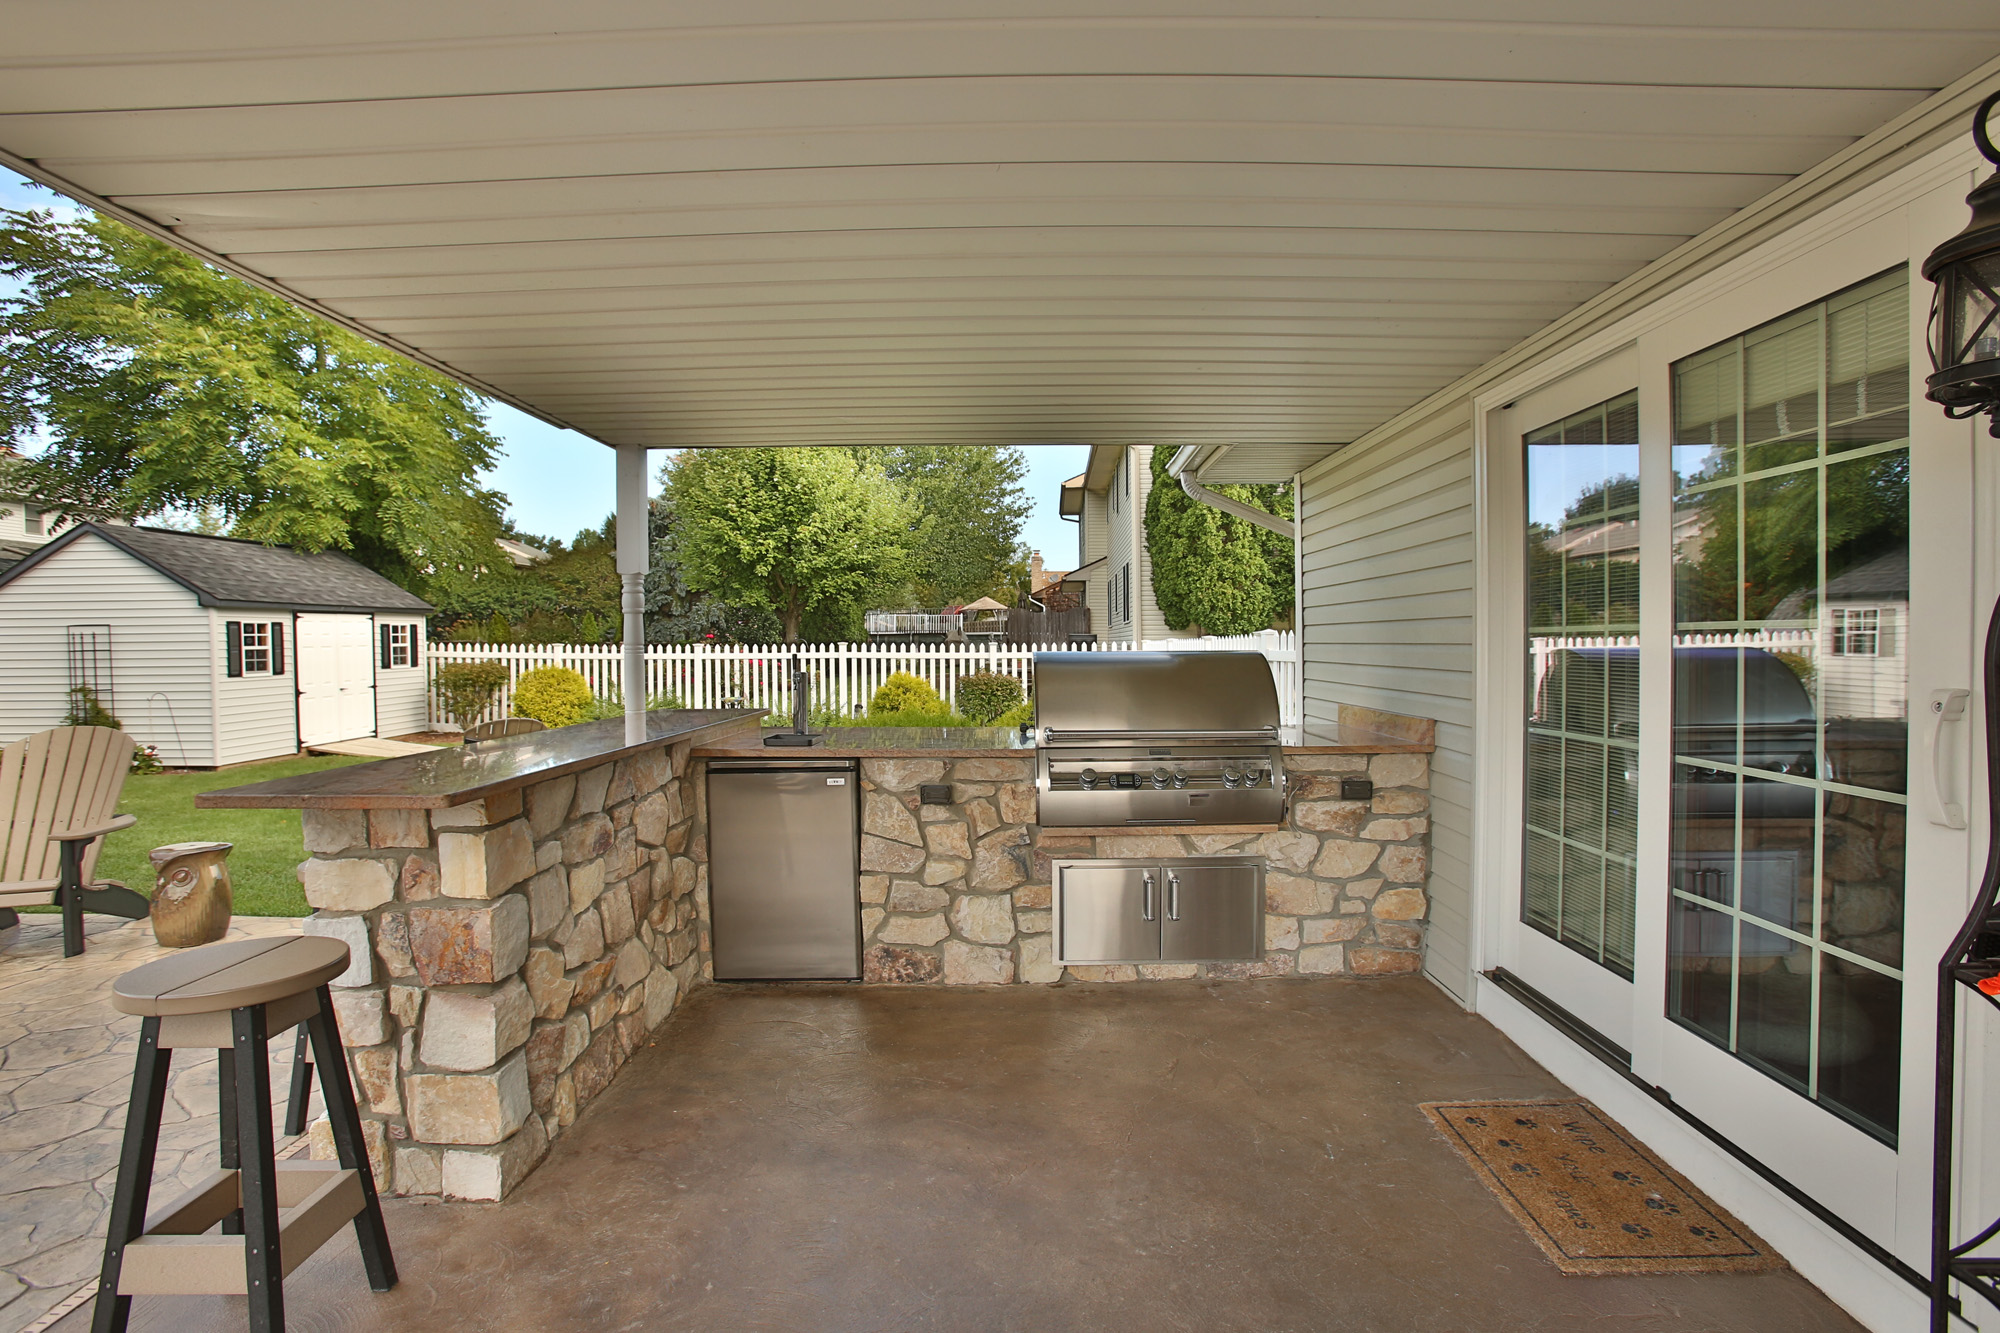 Planning for an Outdoor Kitchen